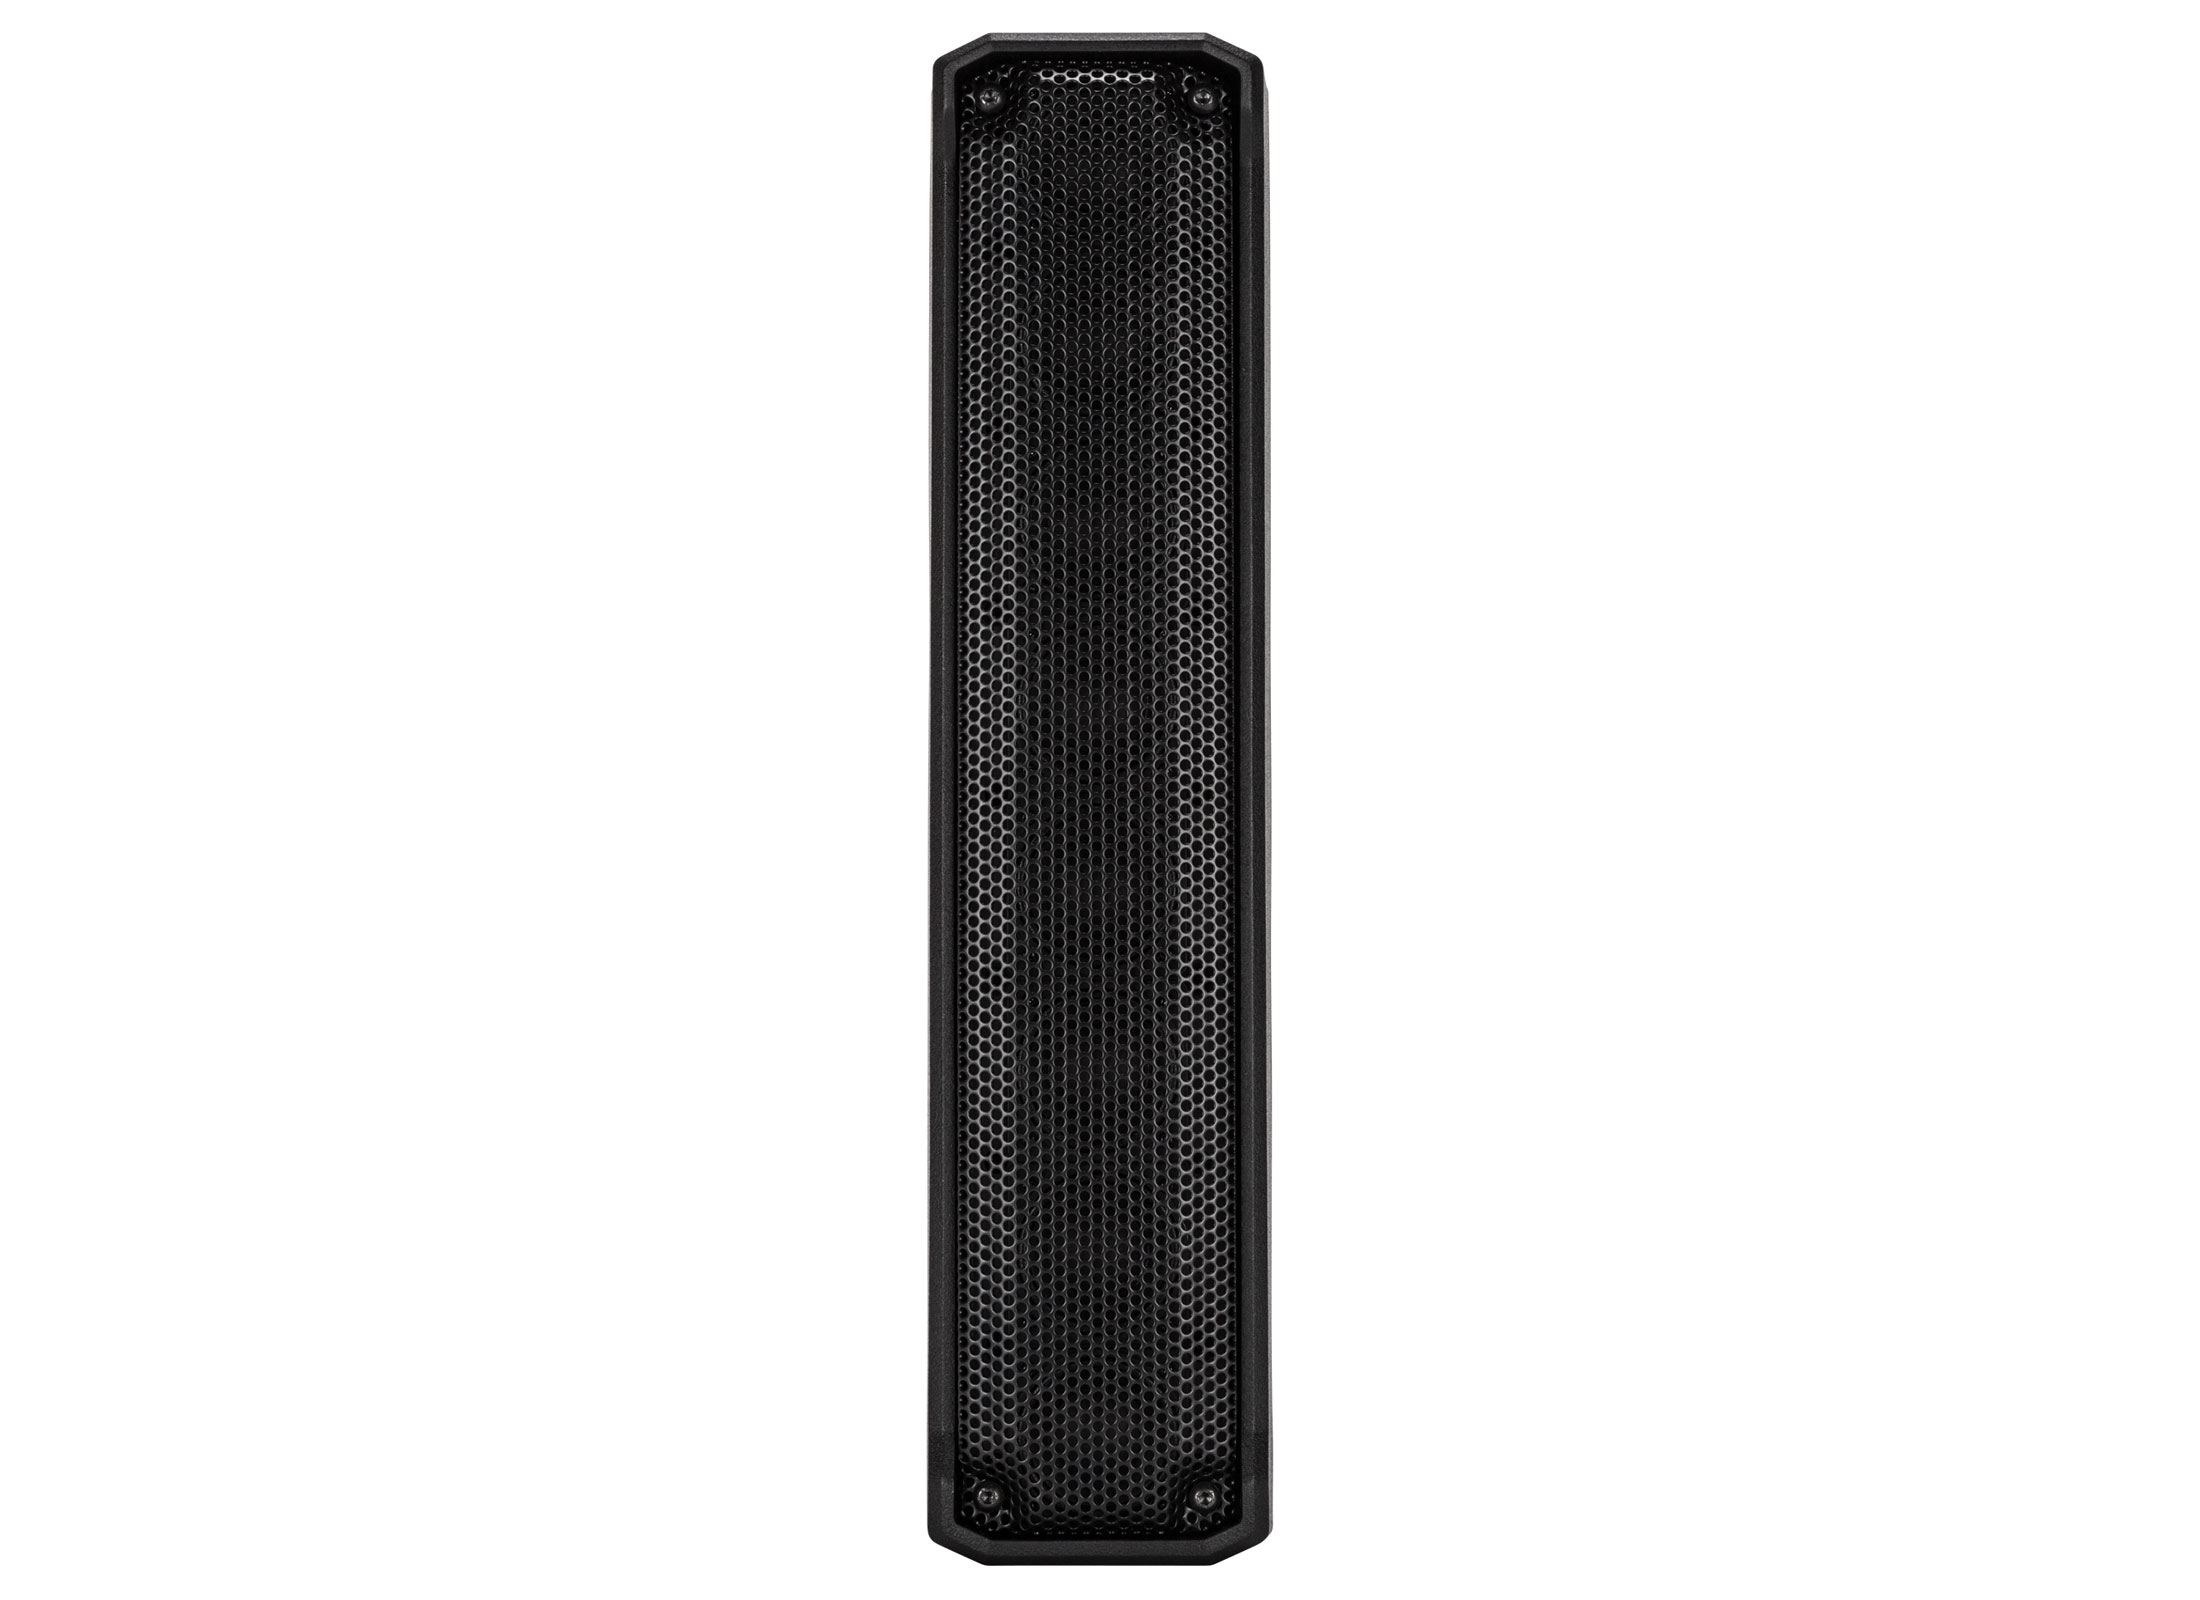 RCF EVOX J8 Säulen Active System, black, 12'' Subwoofer, 8x 2'' High-Mid  Box, 700W, 120°x30°, incl  Distance Tube